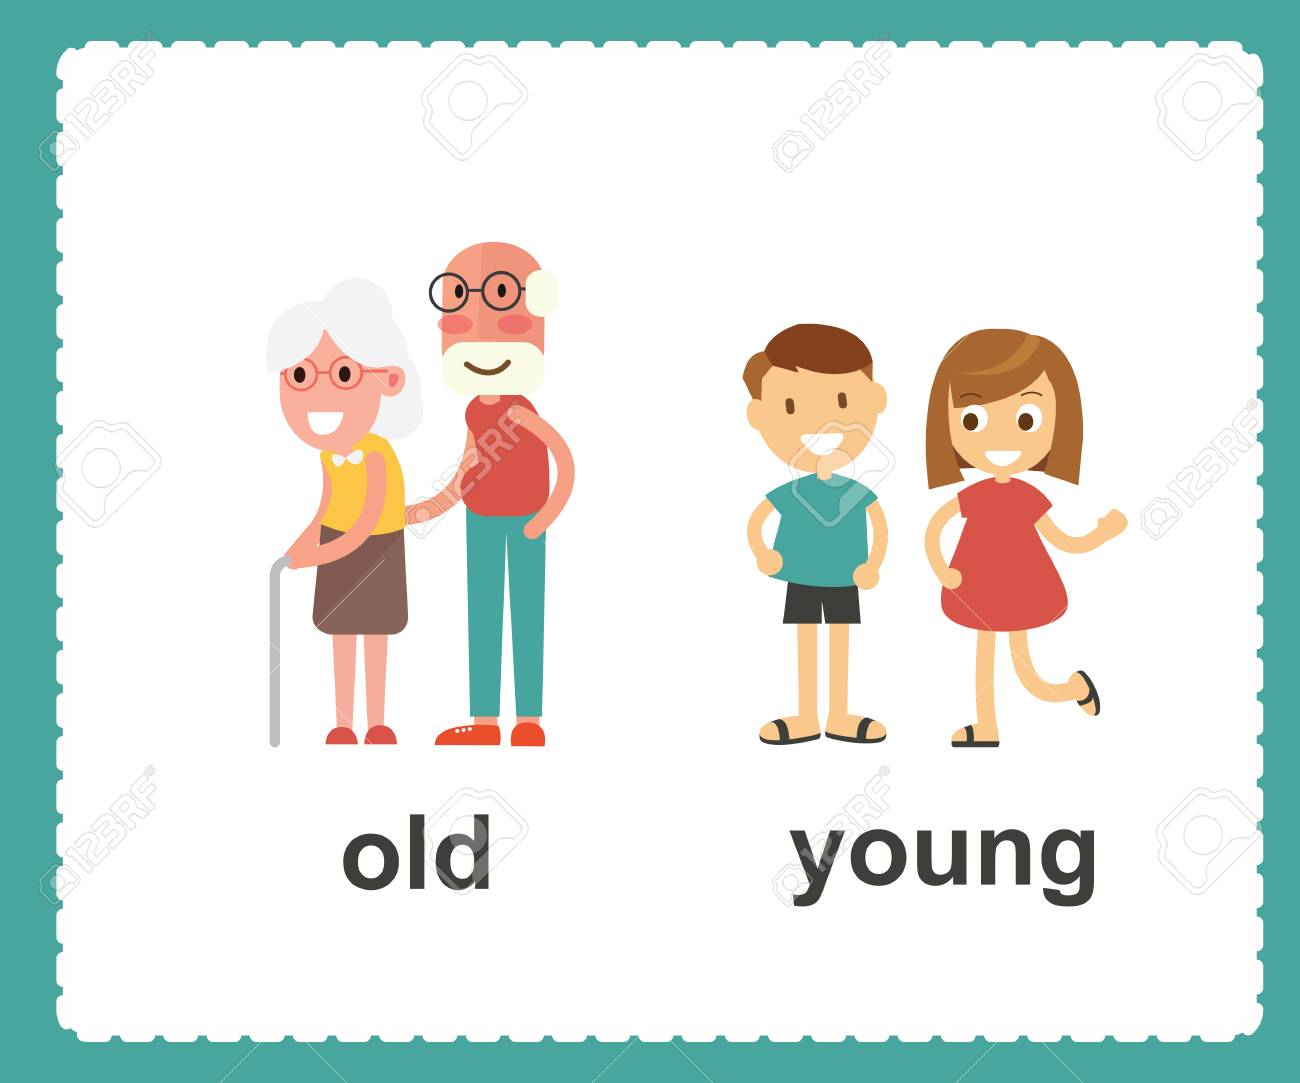 Opposite English words showing old and young vector illustration.